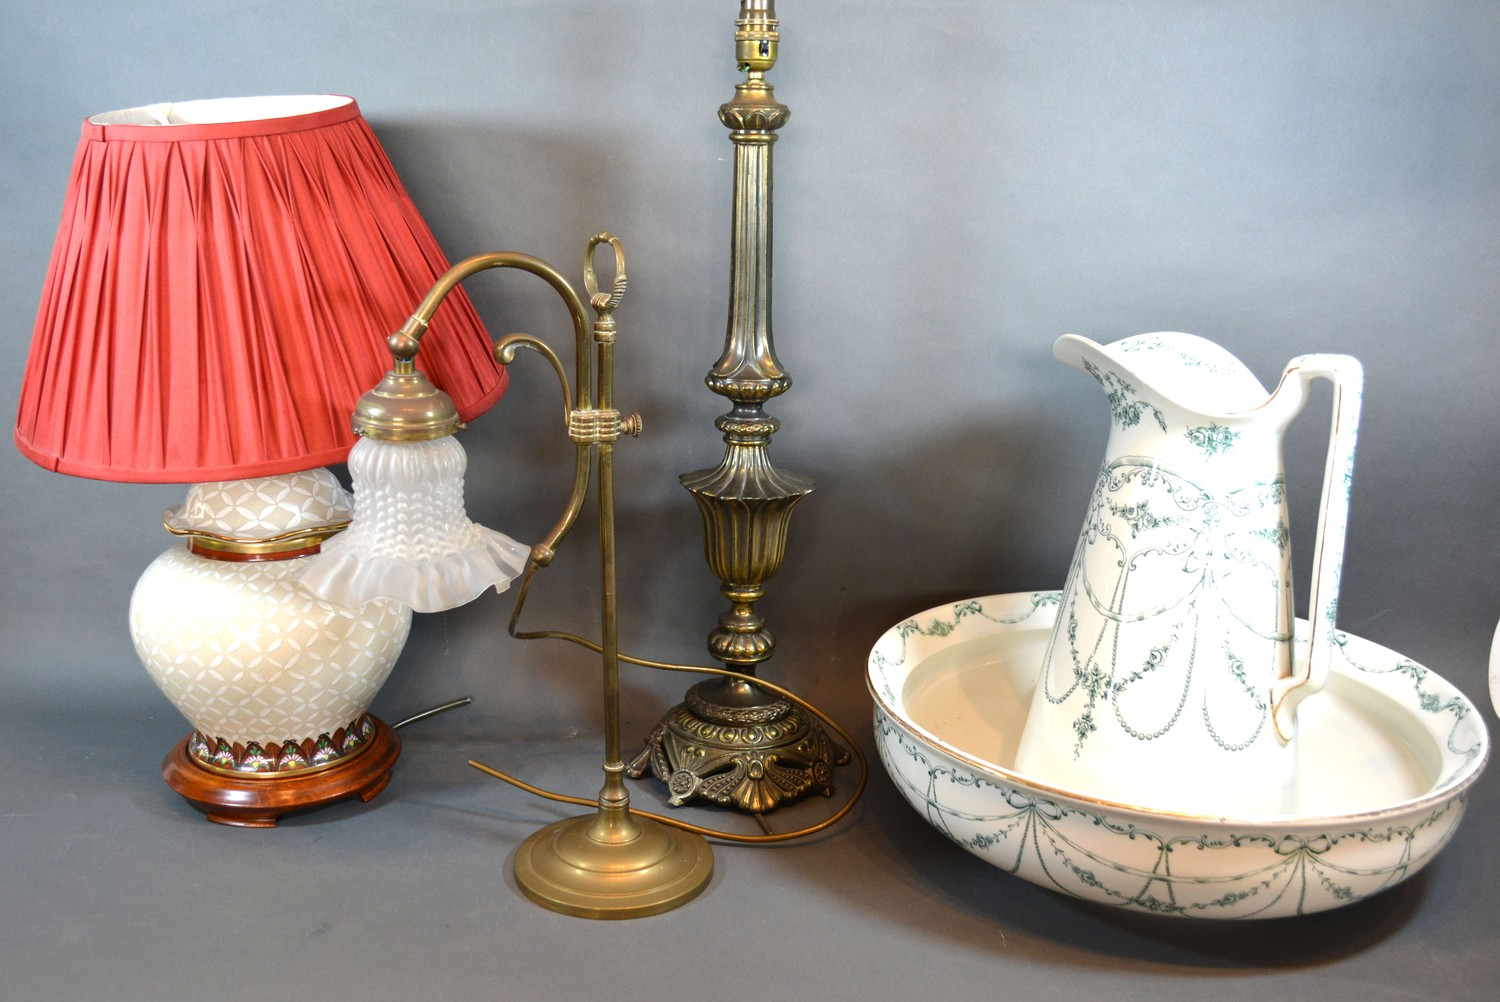 A Brass Adjustable Table Lamp with opaque glass shade together with two other table lamps and a